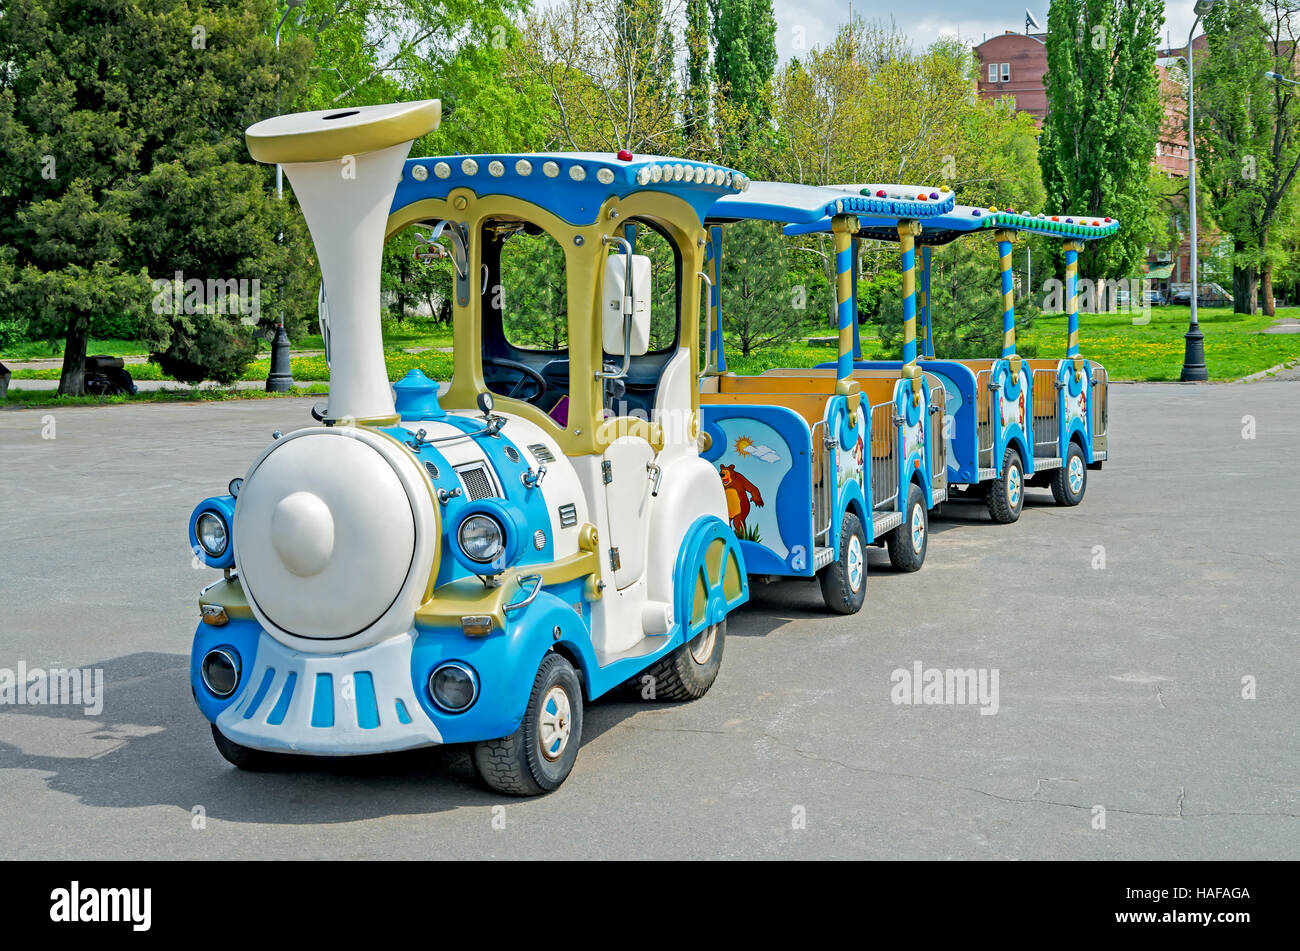 Cheerfully painted children's train for walks in the amusement park - Stock Image